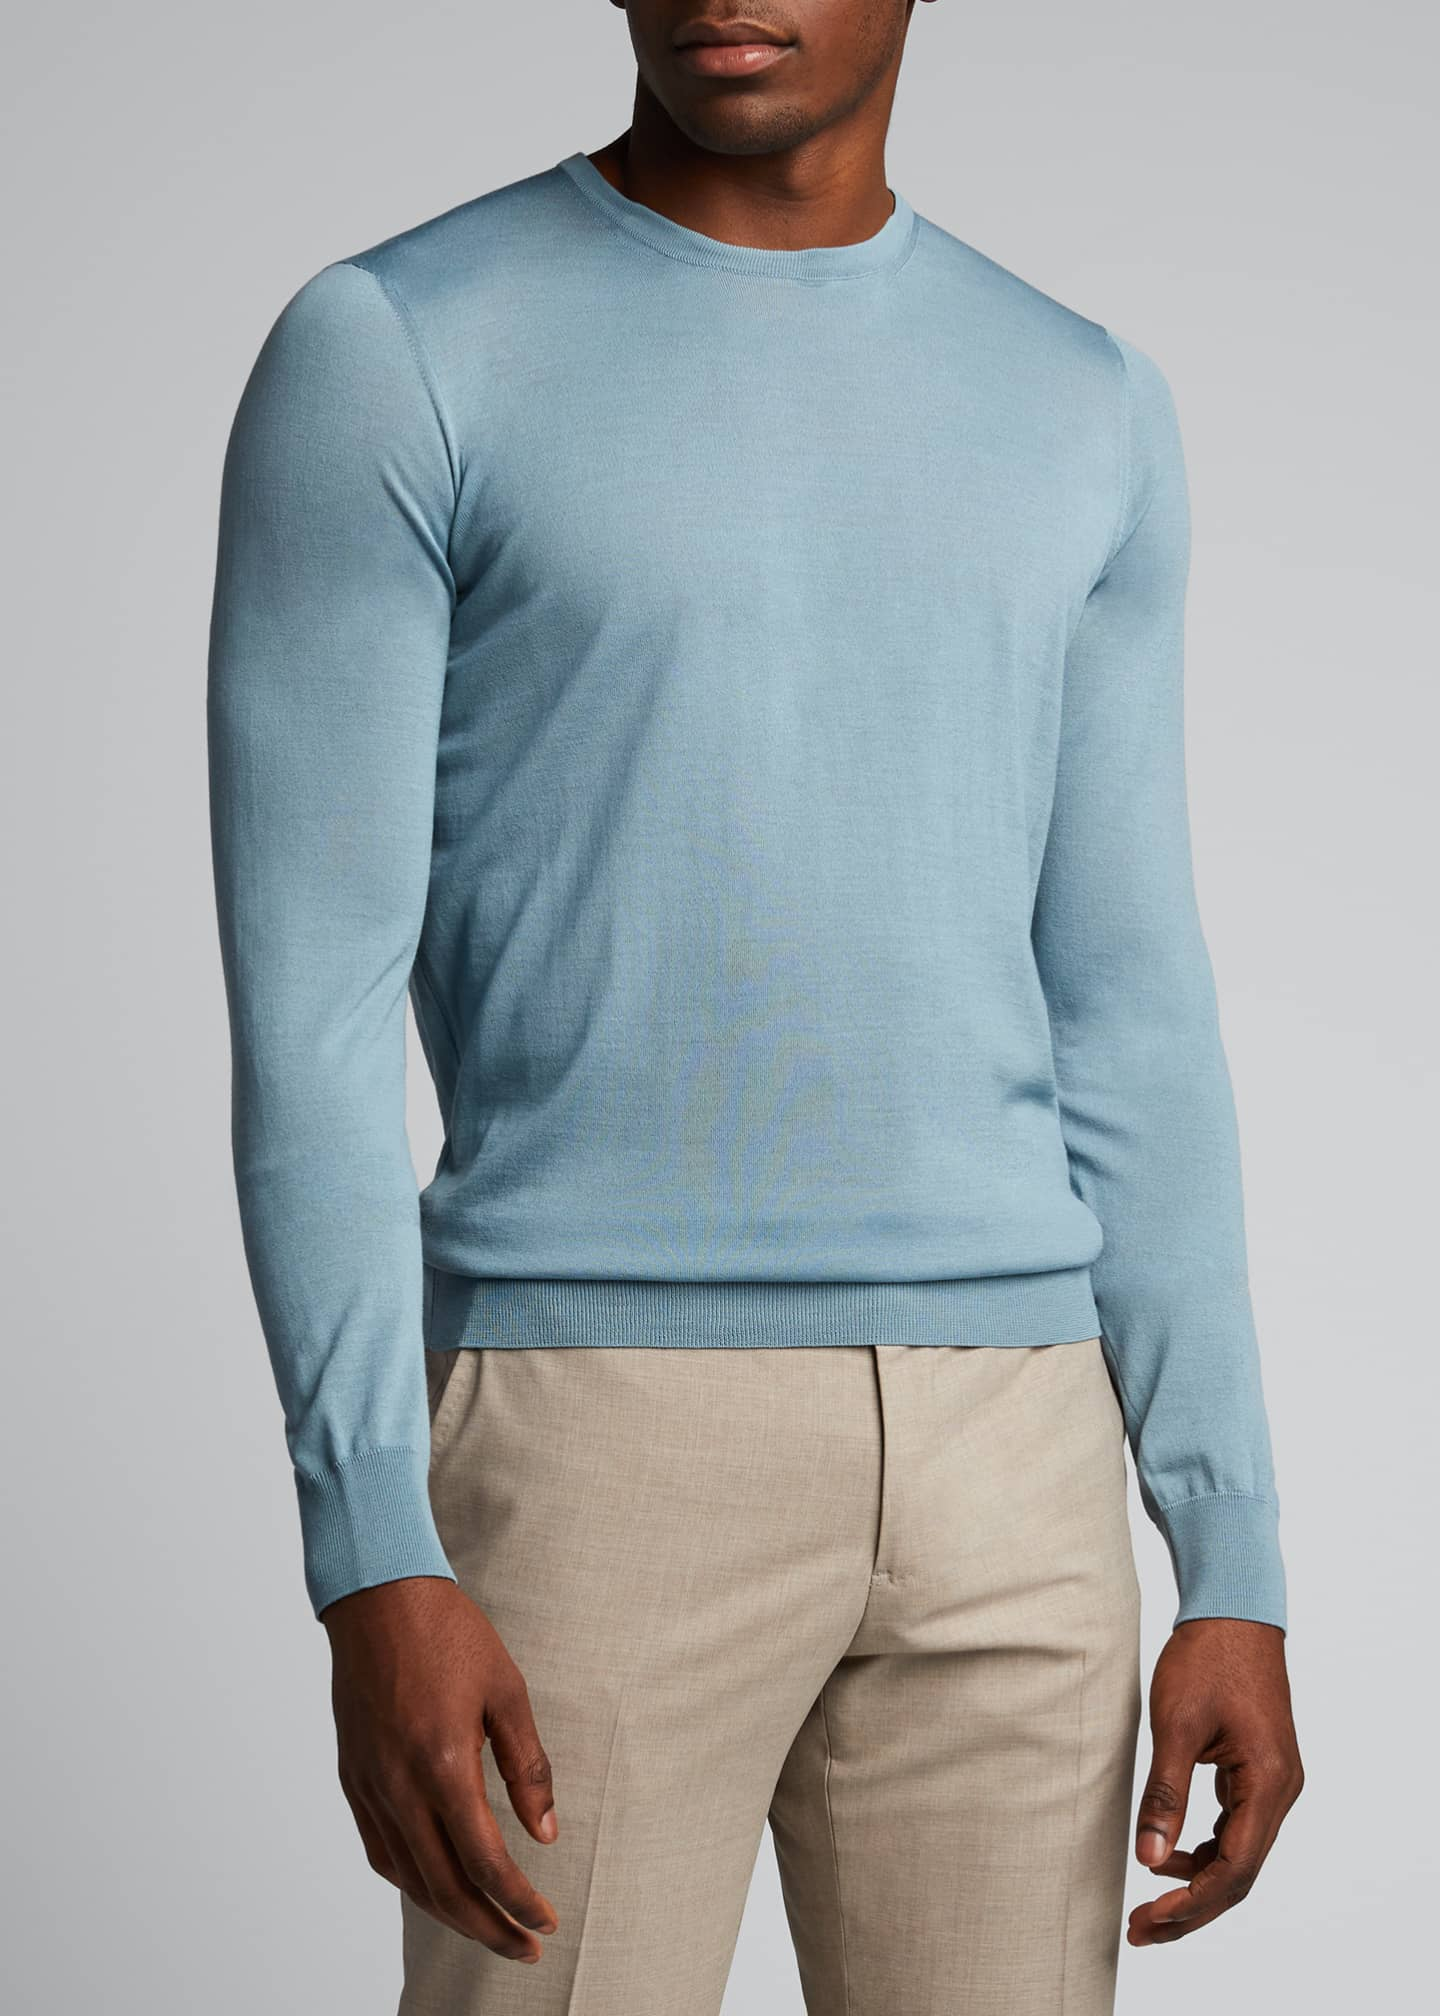 Image 3 of 5: Men's Plain Knit Wool Sweater